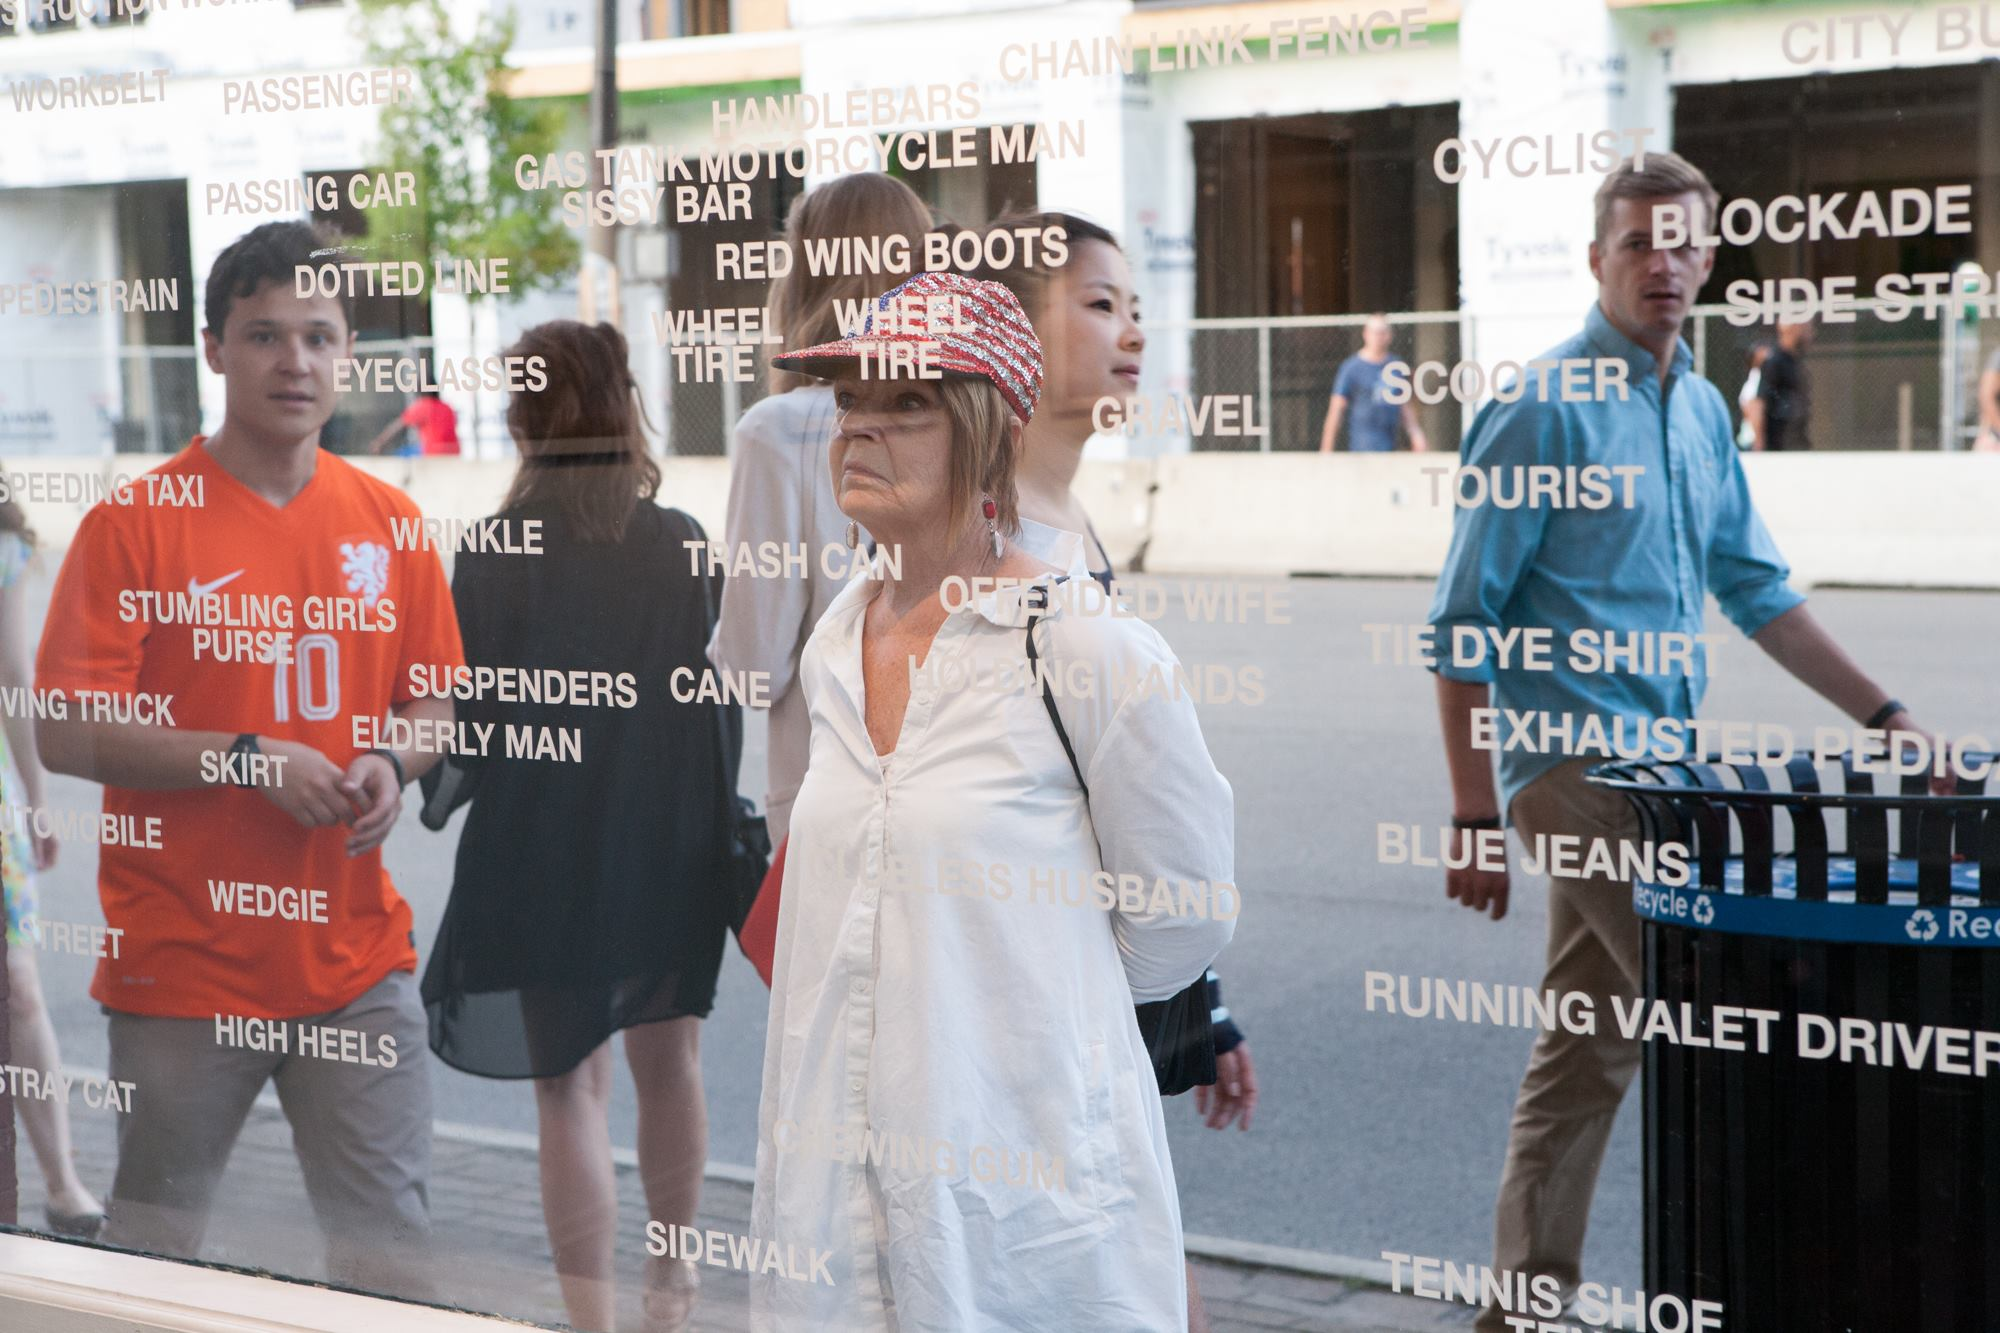 Looking Out   Installation view, 2014 Vinyl on window Roy G Biv Gallery, Columbus, Ohio